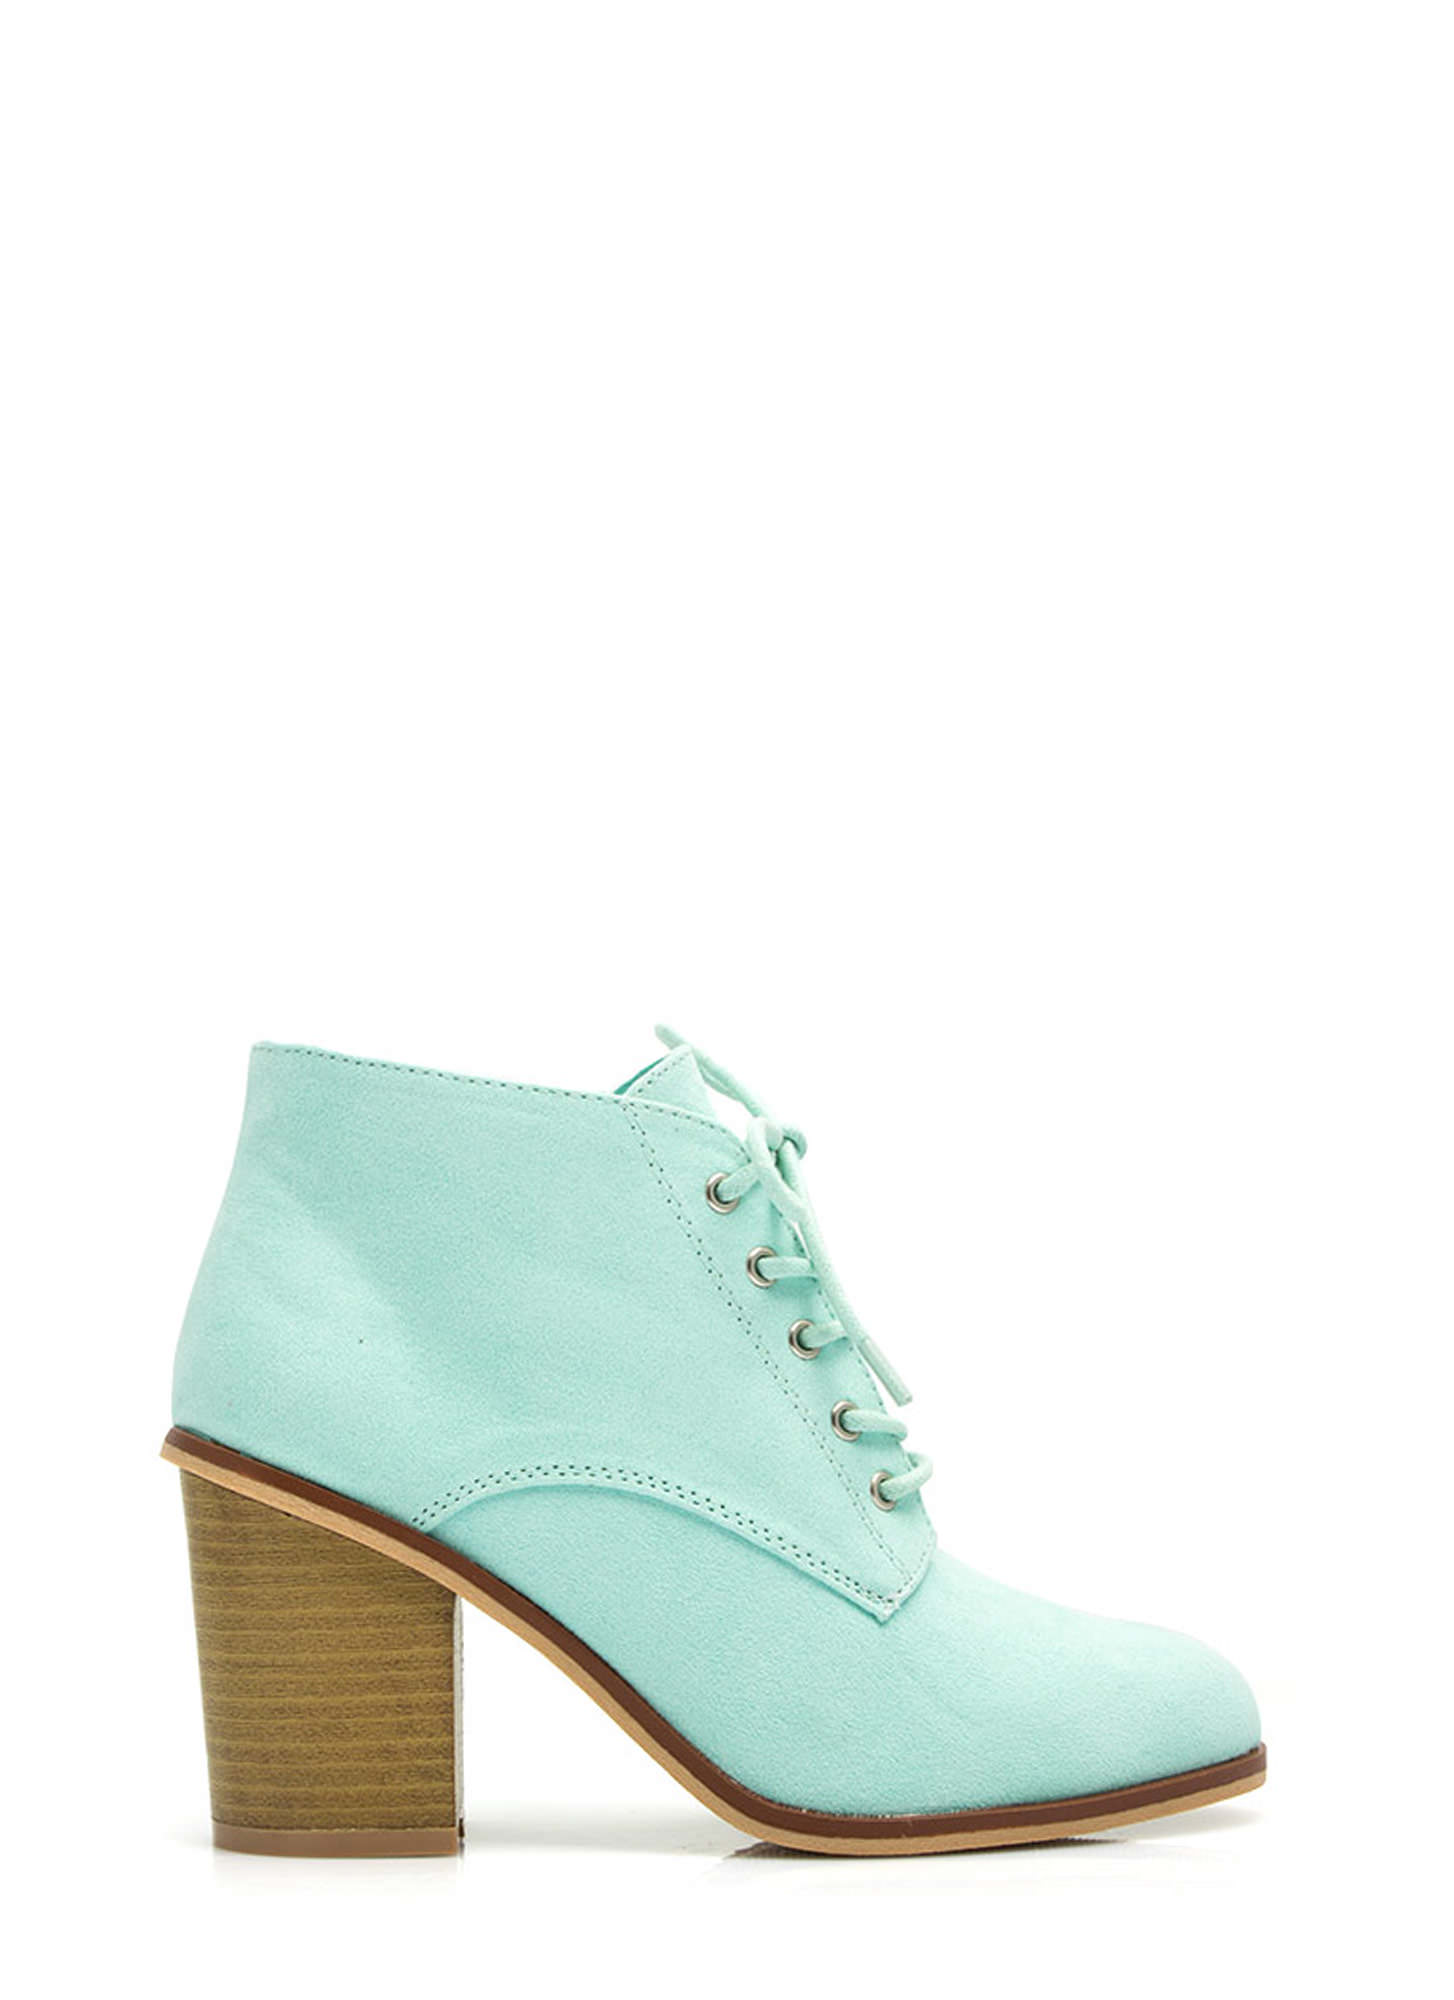 Get Laced Faux Suede Booties MENTHOL (Final Sale)